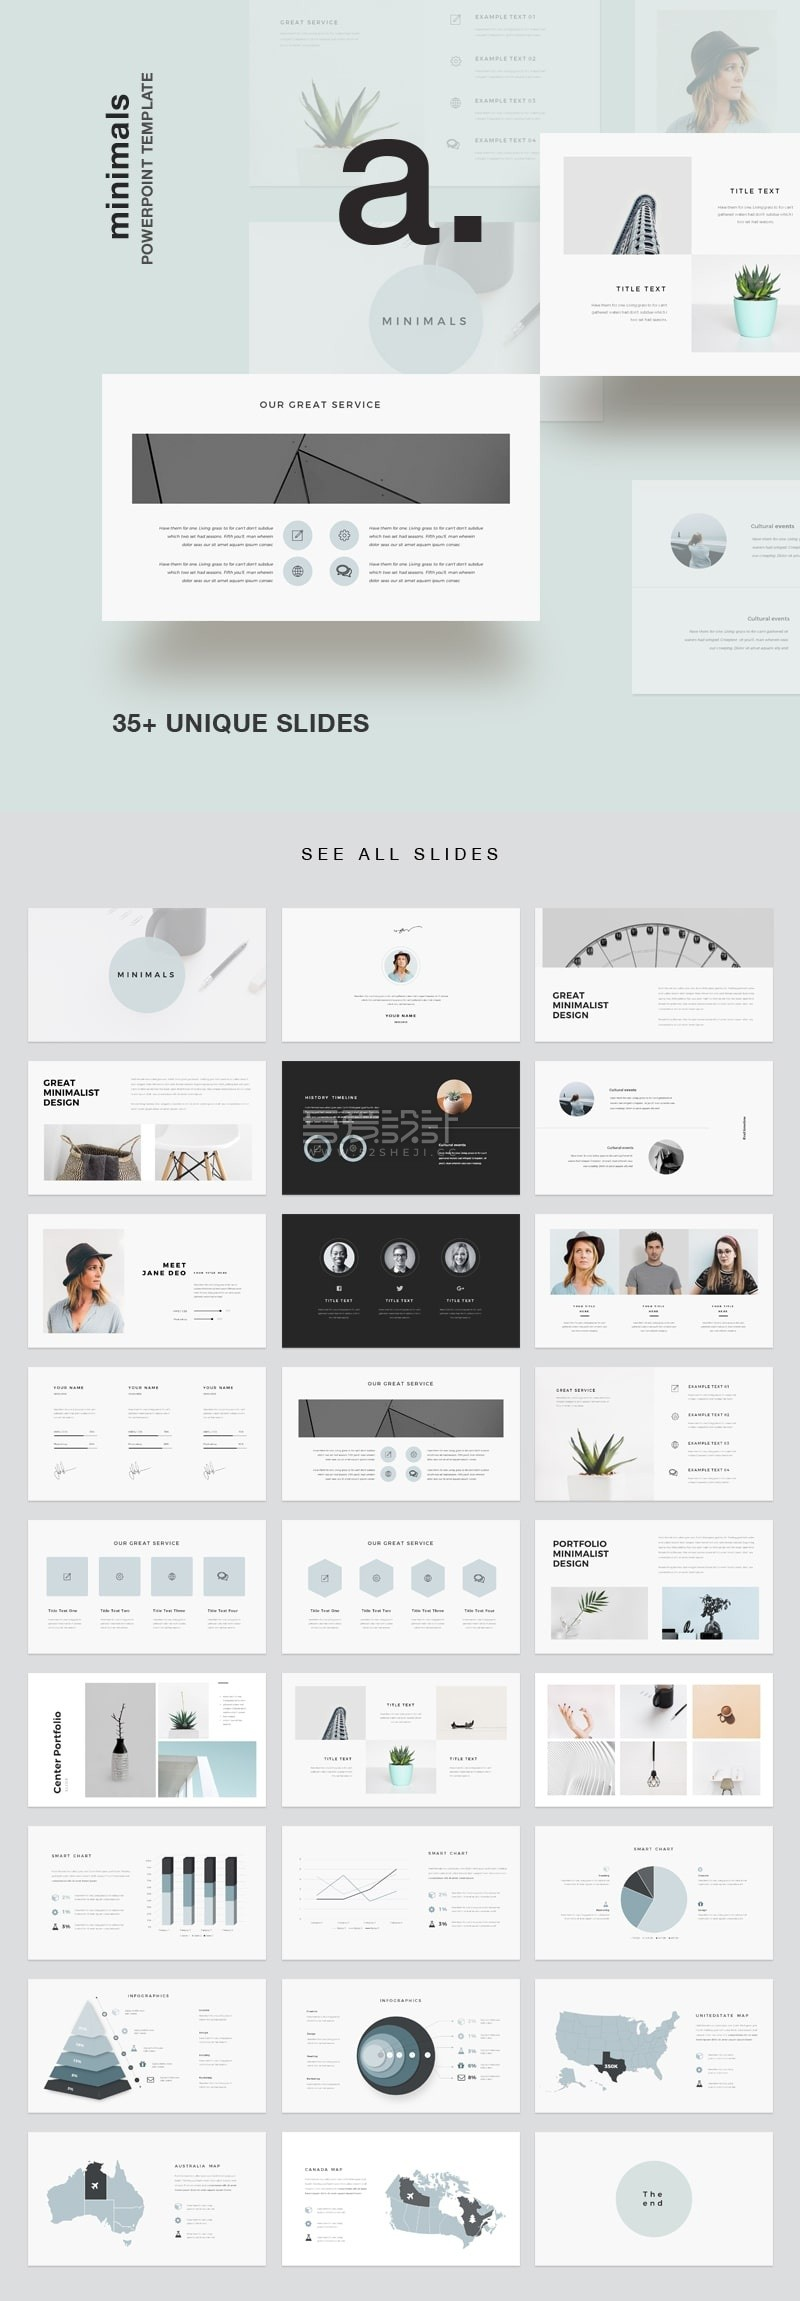 minimals-powerpoint-presentation-template-16011-preview_a1